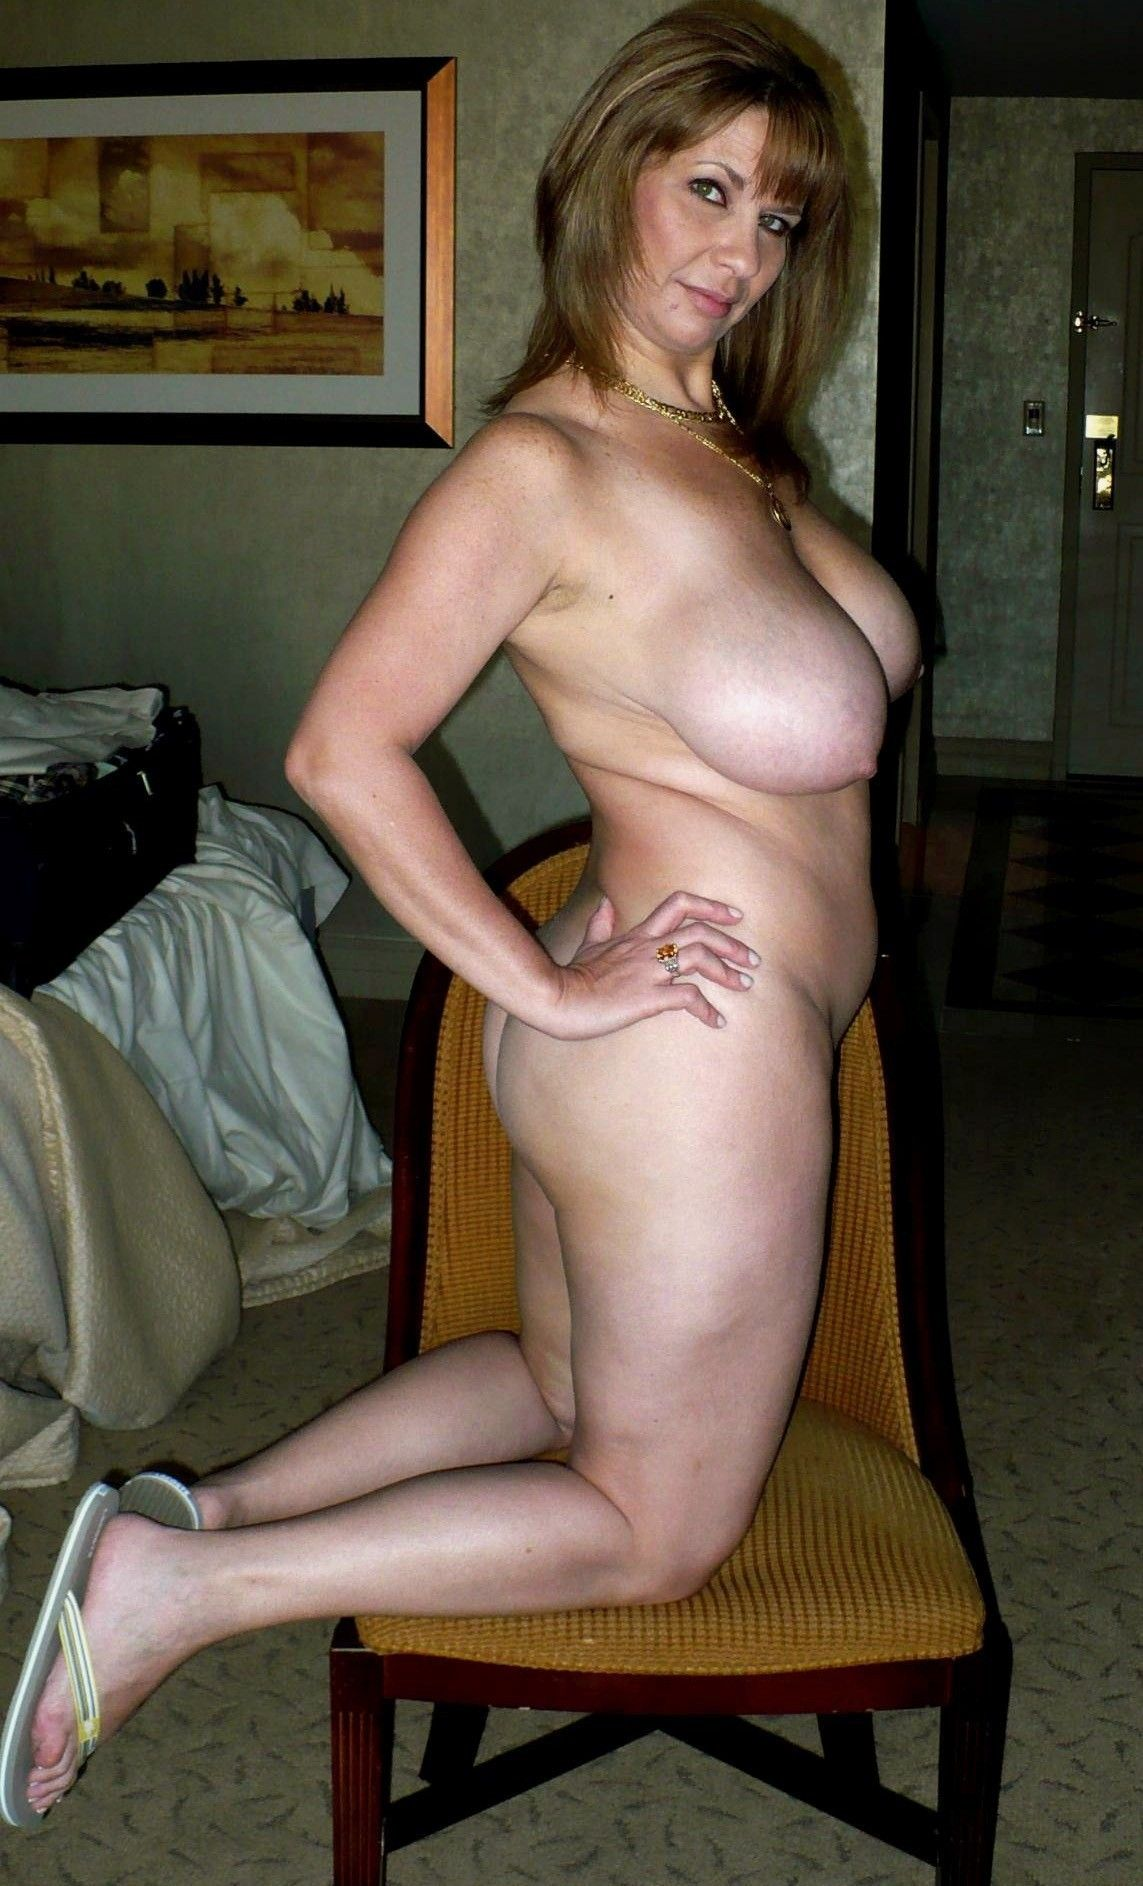 PHAT TITTED ASH BLONDE LOVES SUMMER HOOK UP AND GETS ALL JIZZ GLAZED